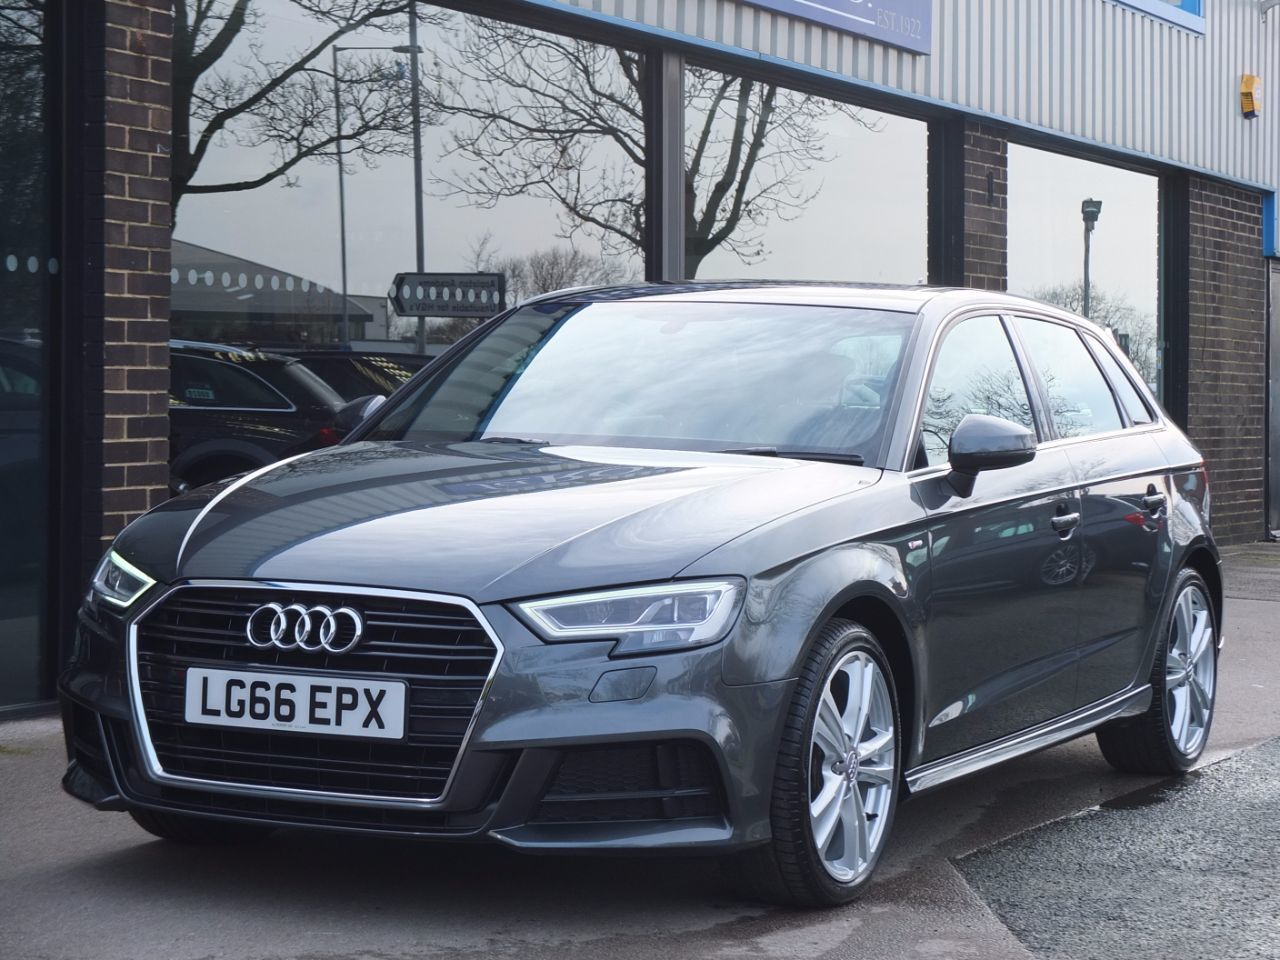 Audi A3 Sportback 1.4 TFSI S Line S Tronic (Cylinder on Demand) Hatchback Petrol Daytona Grey MetallicAudi A3 Sportback 1.4 TFSI S Line S Tronic (Cylinder on Demand) Hatchback Petrol Daytona Grey Metallic at fa Roper Ltd Bradford